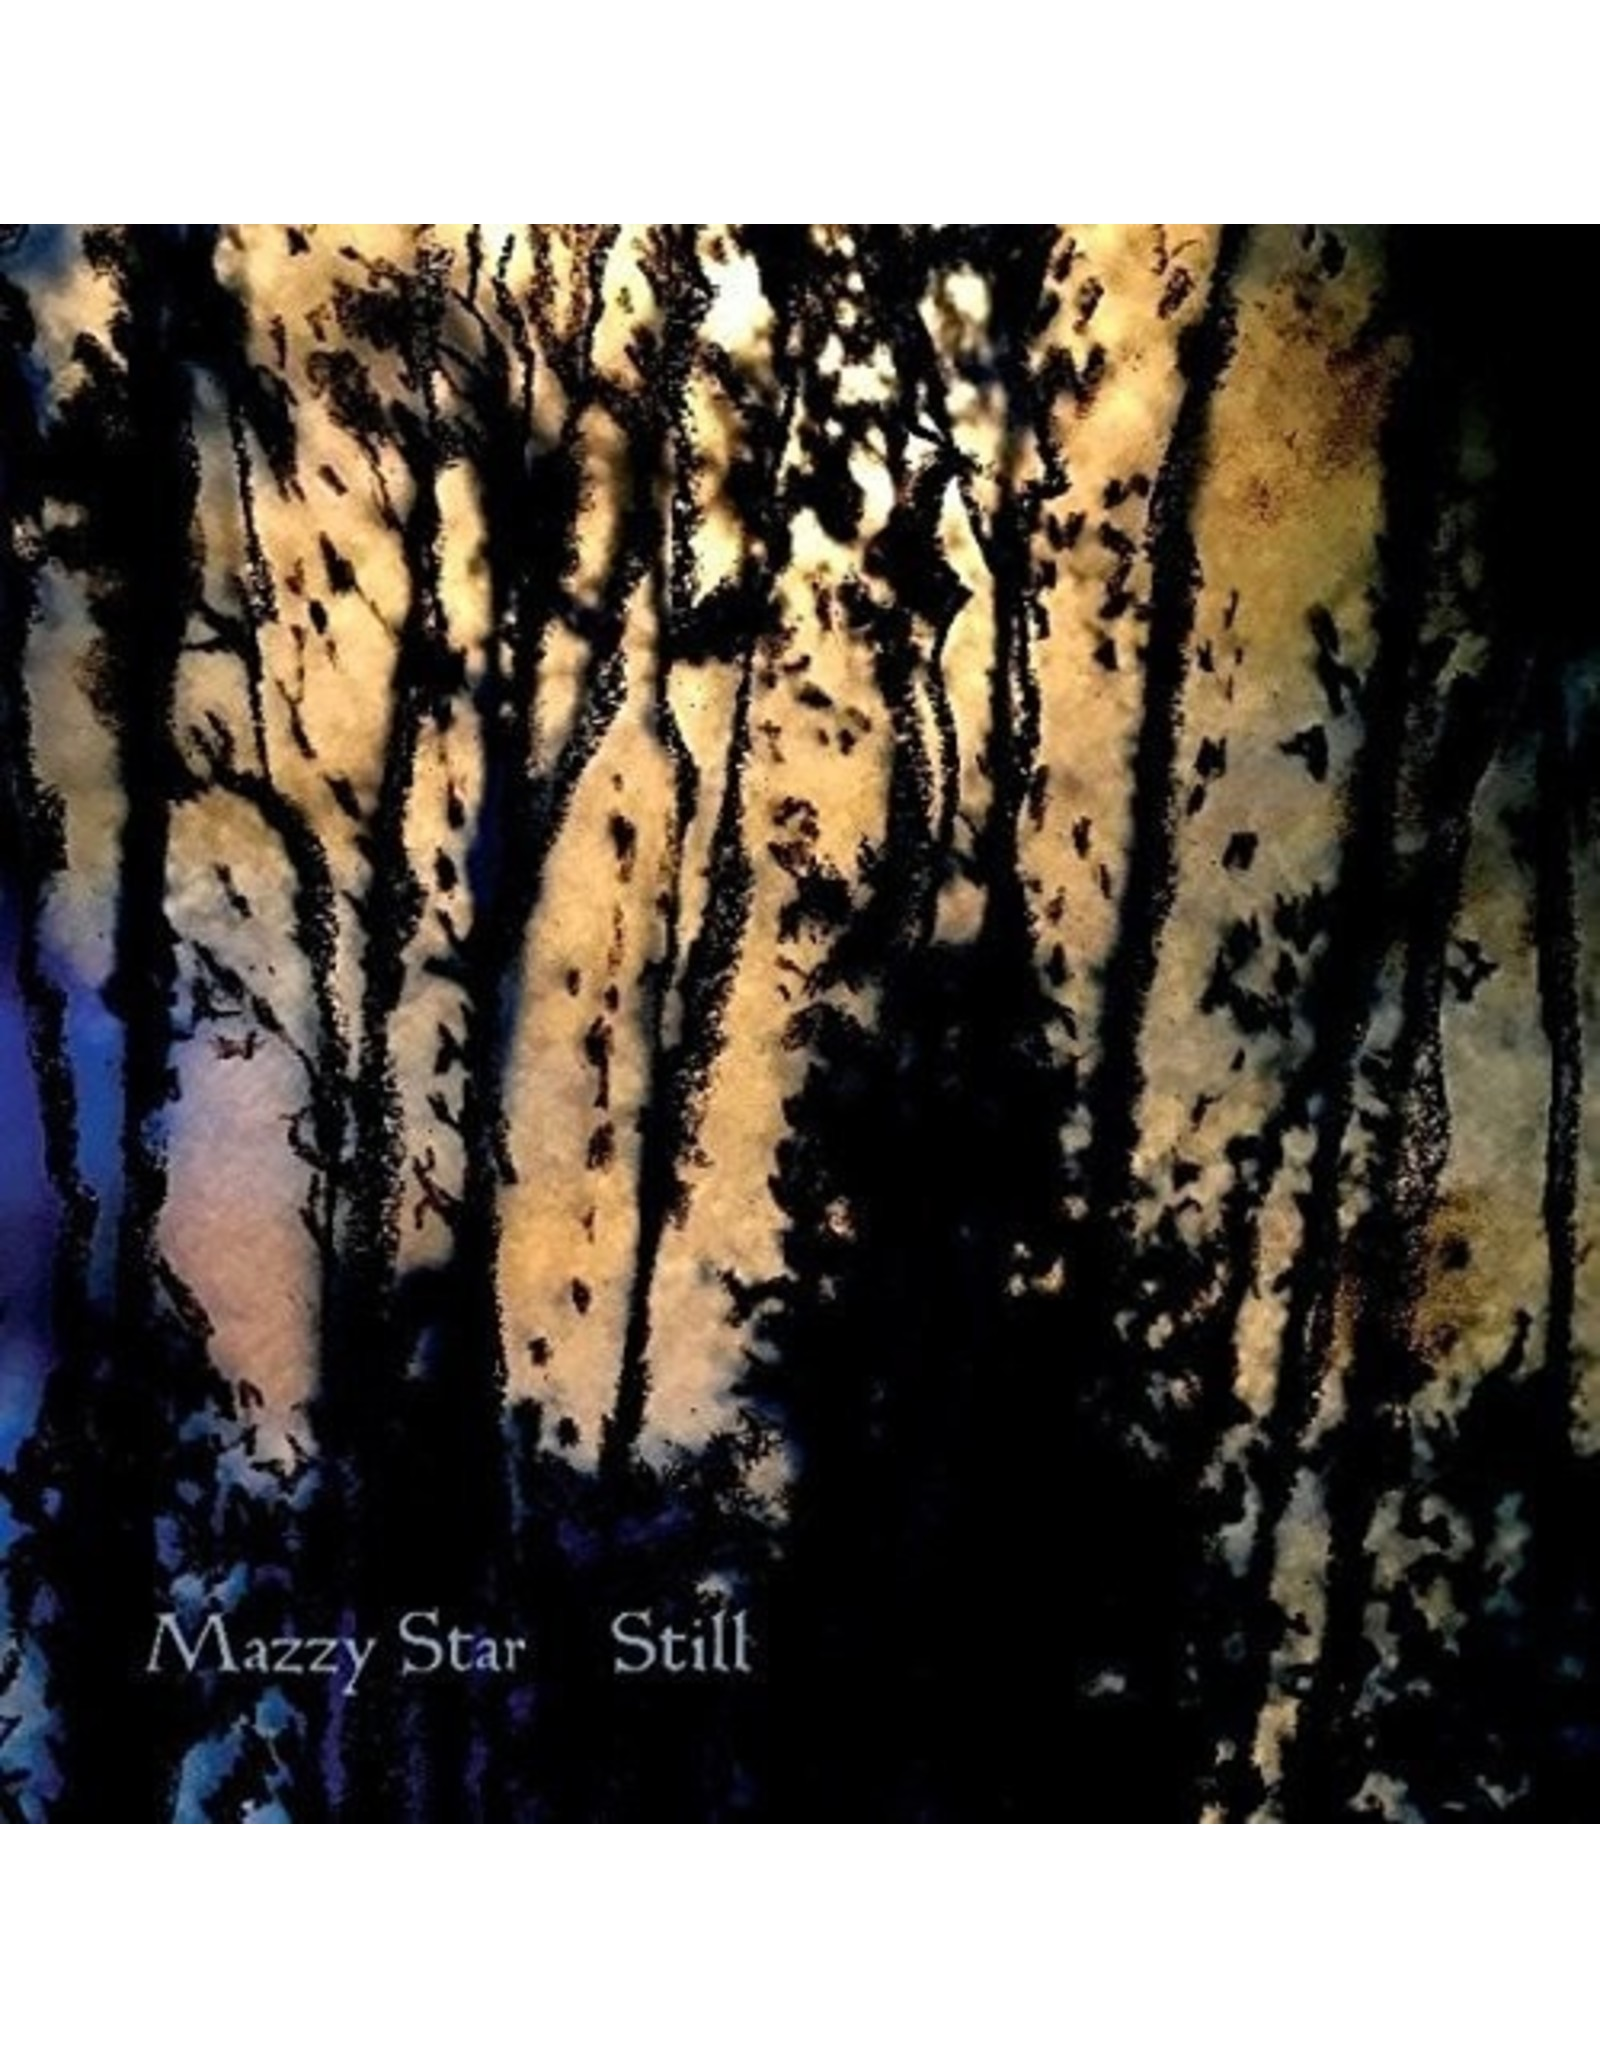 New Vinyl Mazzy Star - Still EP 12""